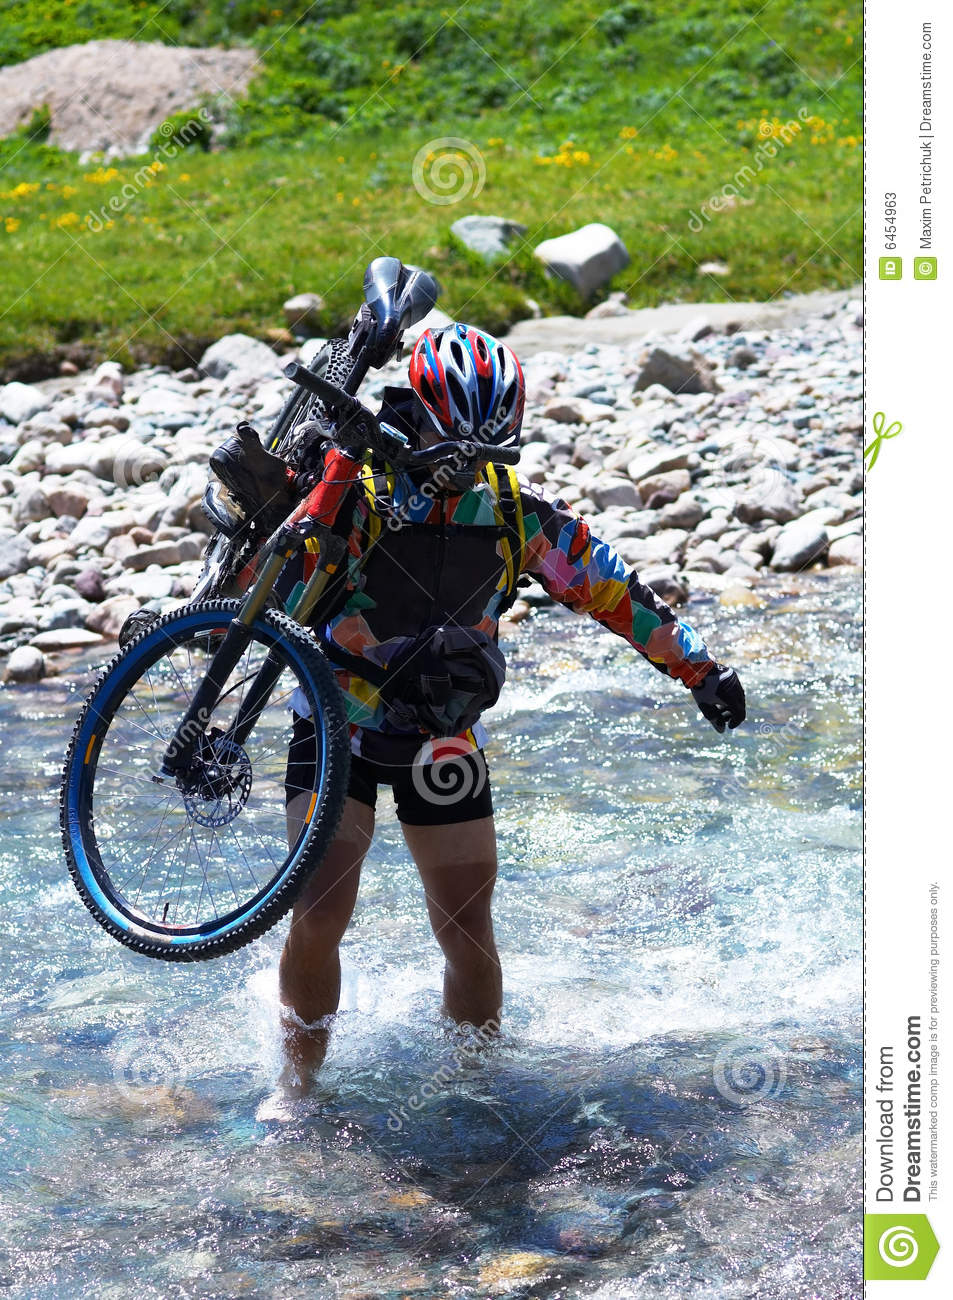 Biker and mountain river